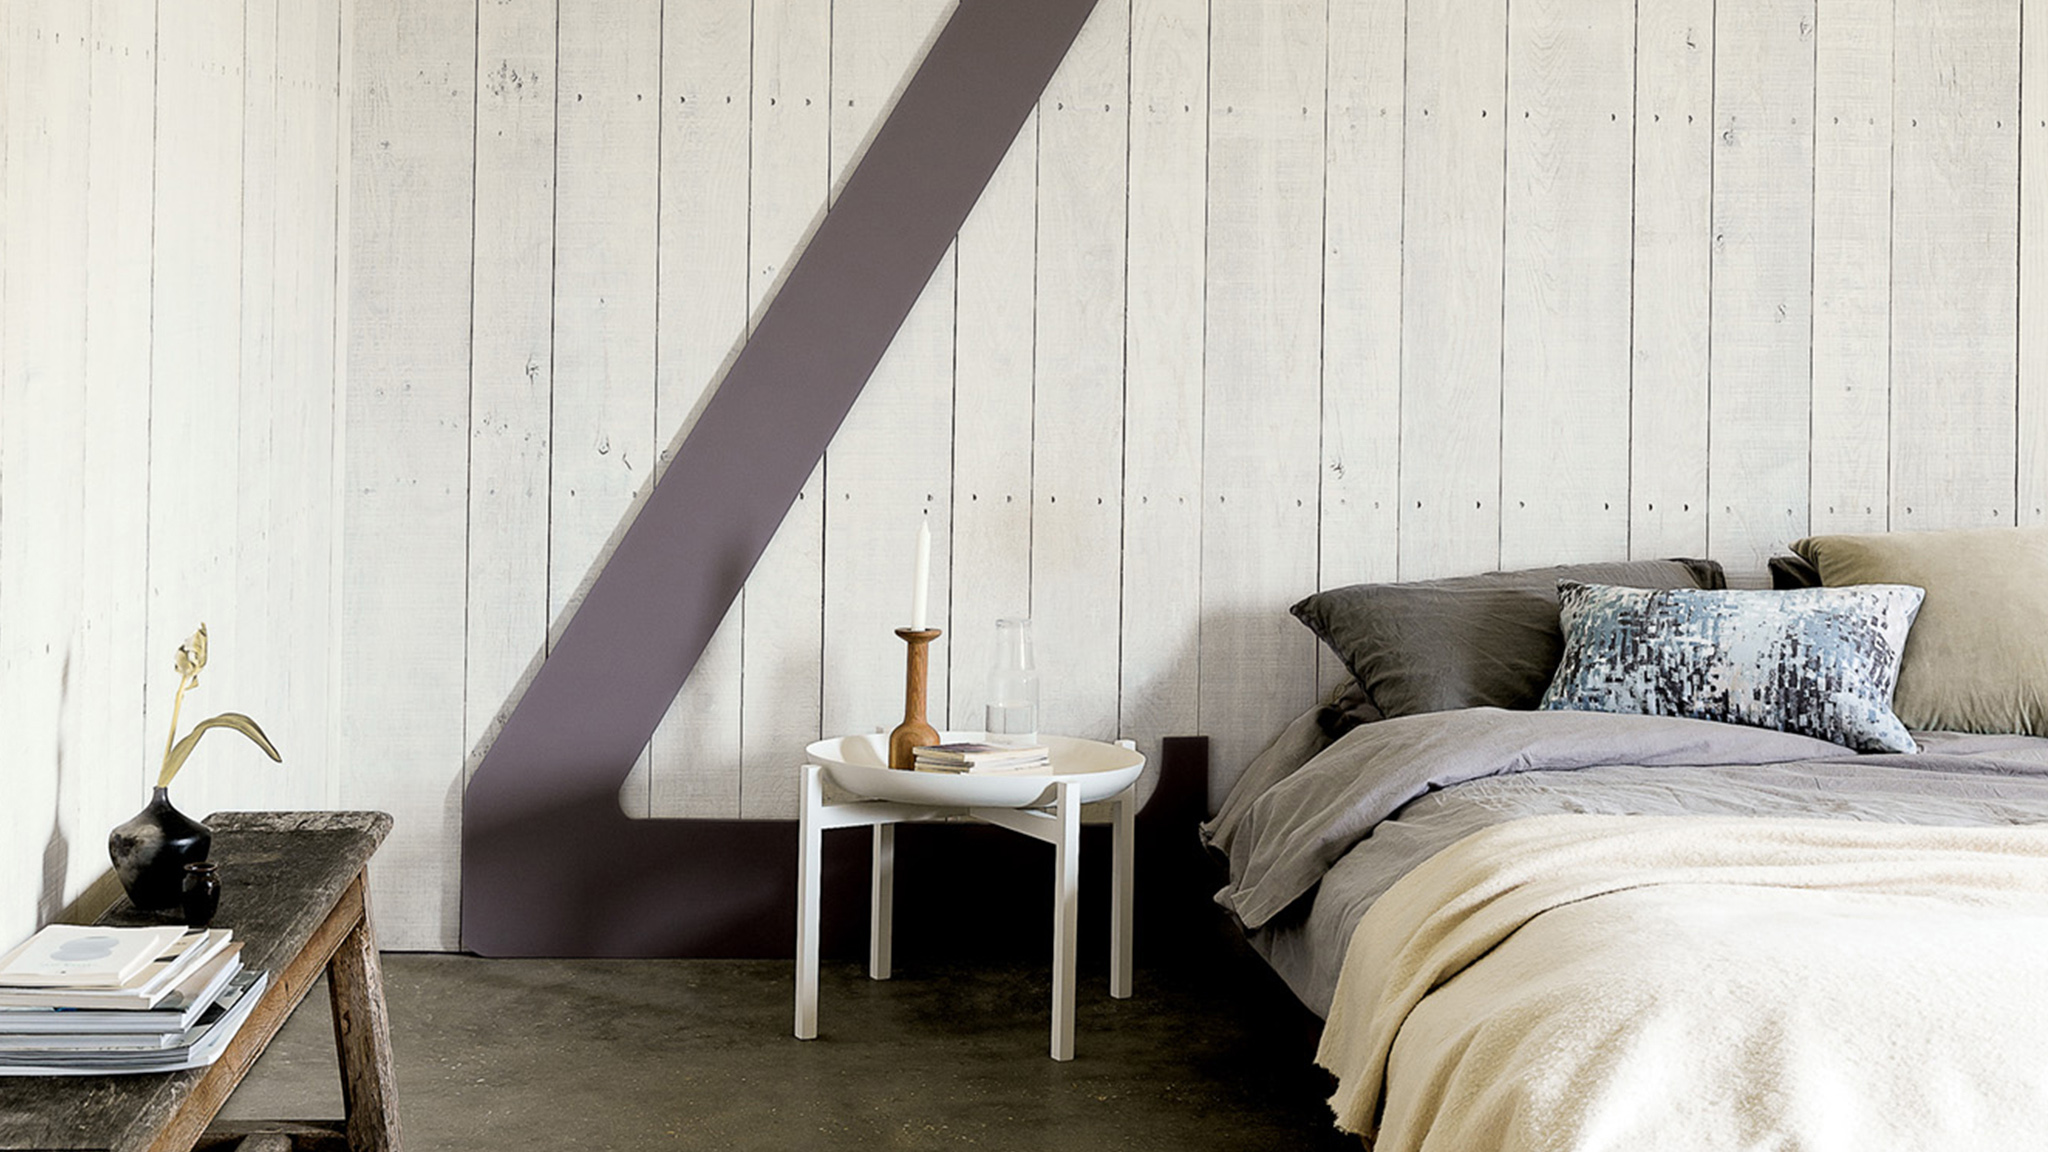 dulux-simply-refresh-wall-panels-ideas-global-2